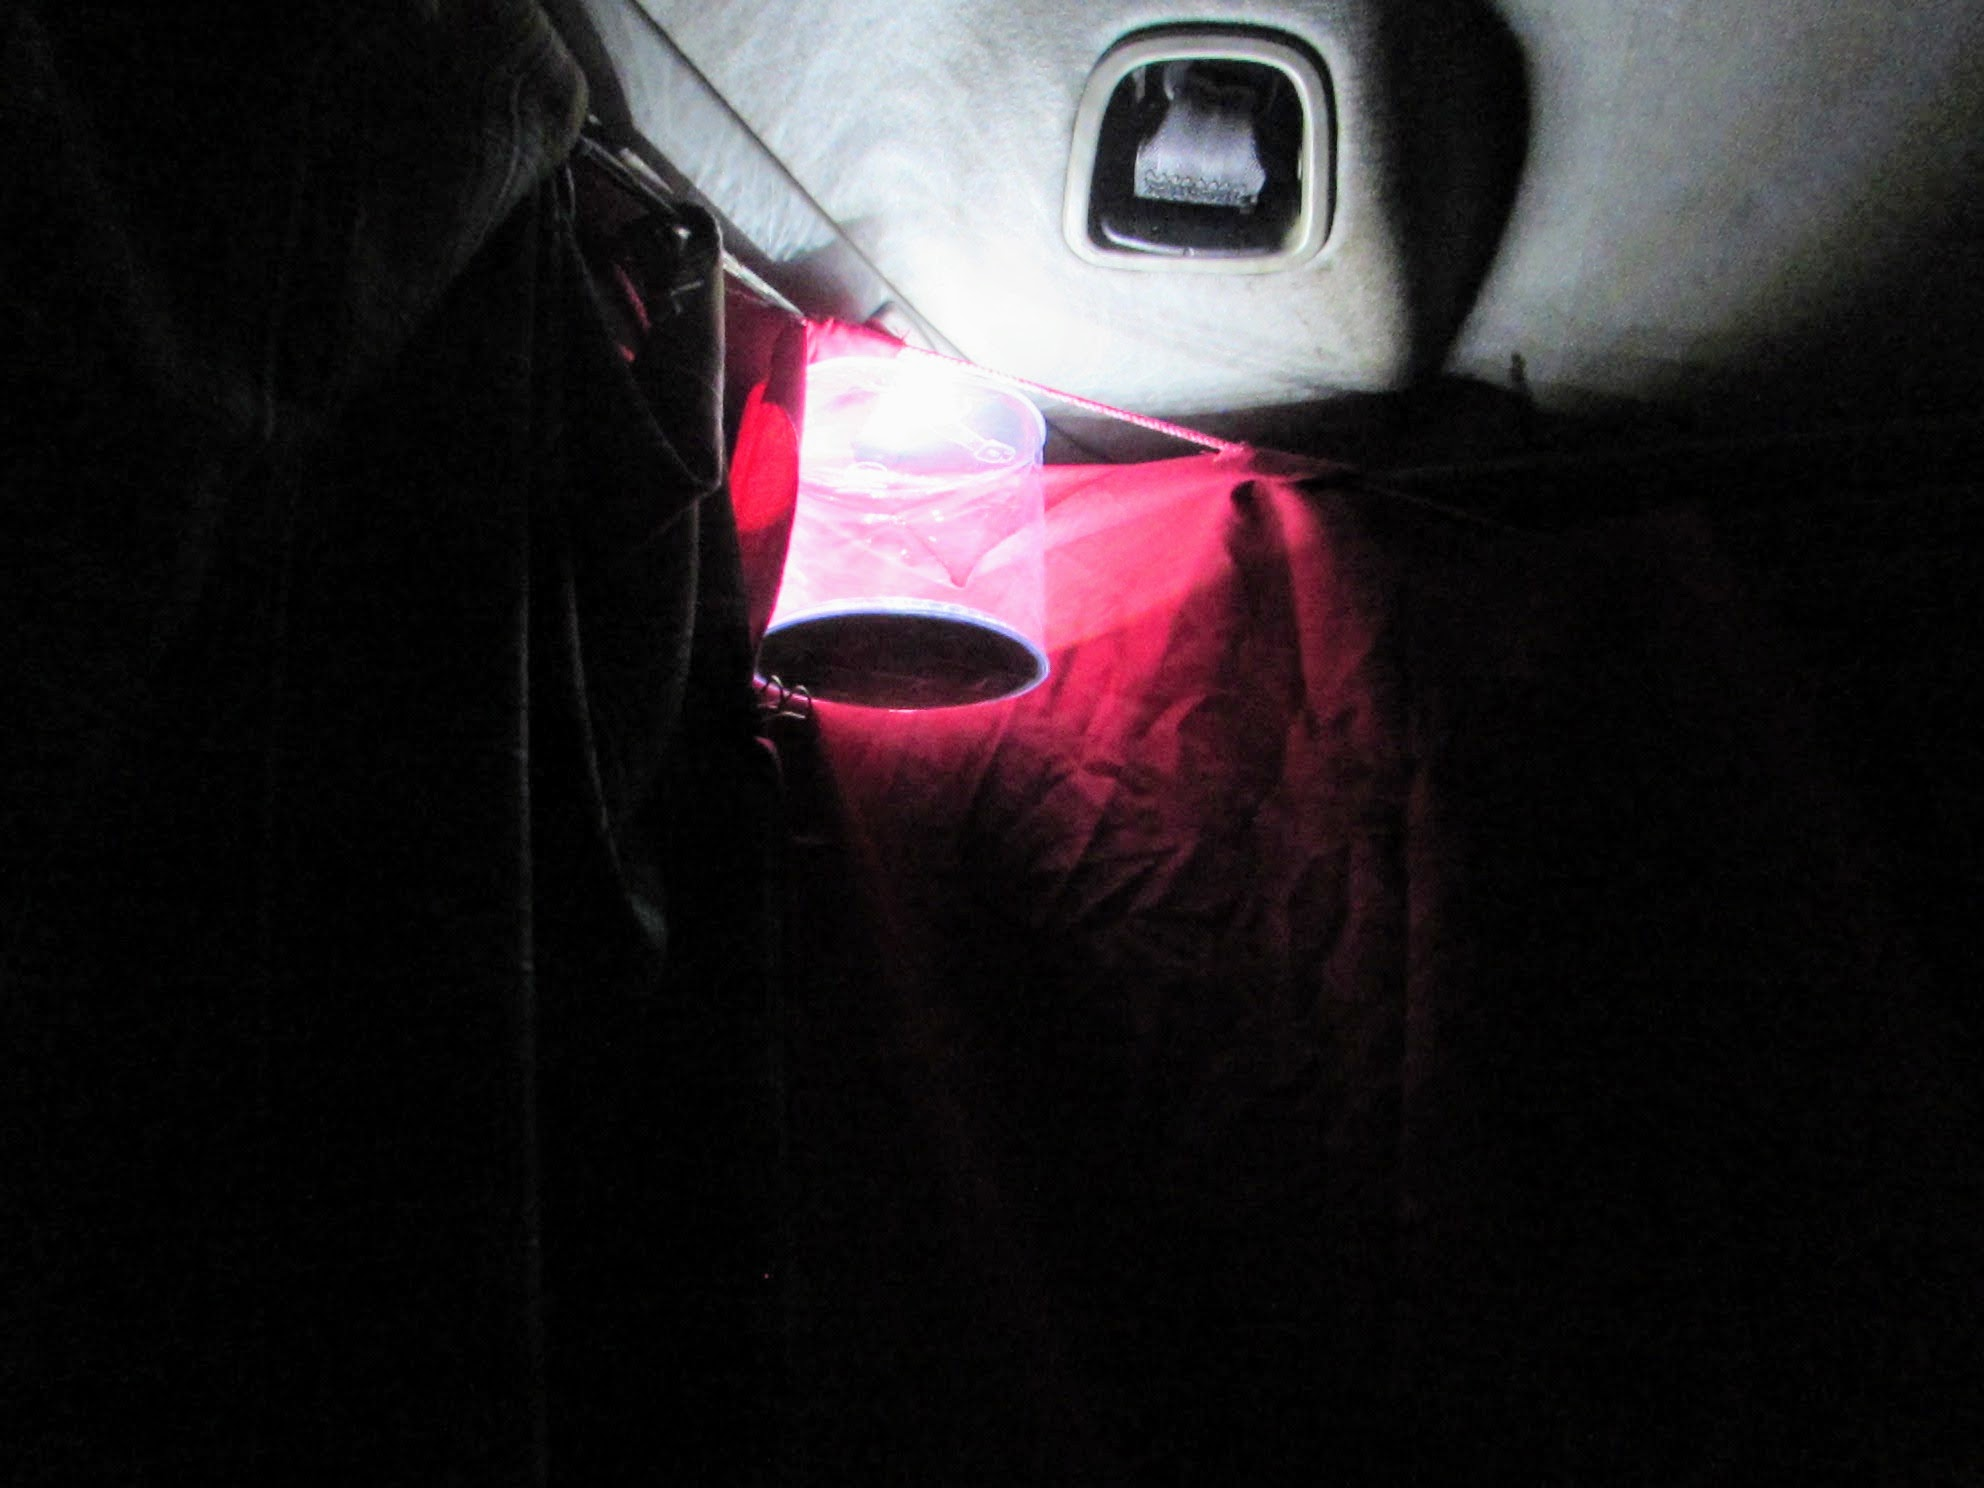 This little lantern made  all  the difference at night in the hatchback.